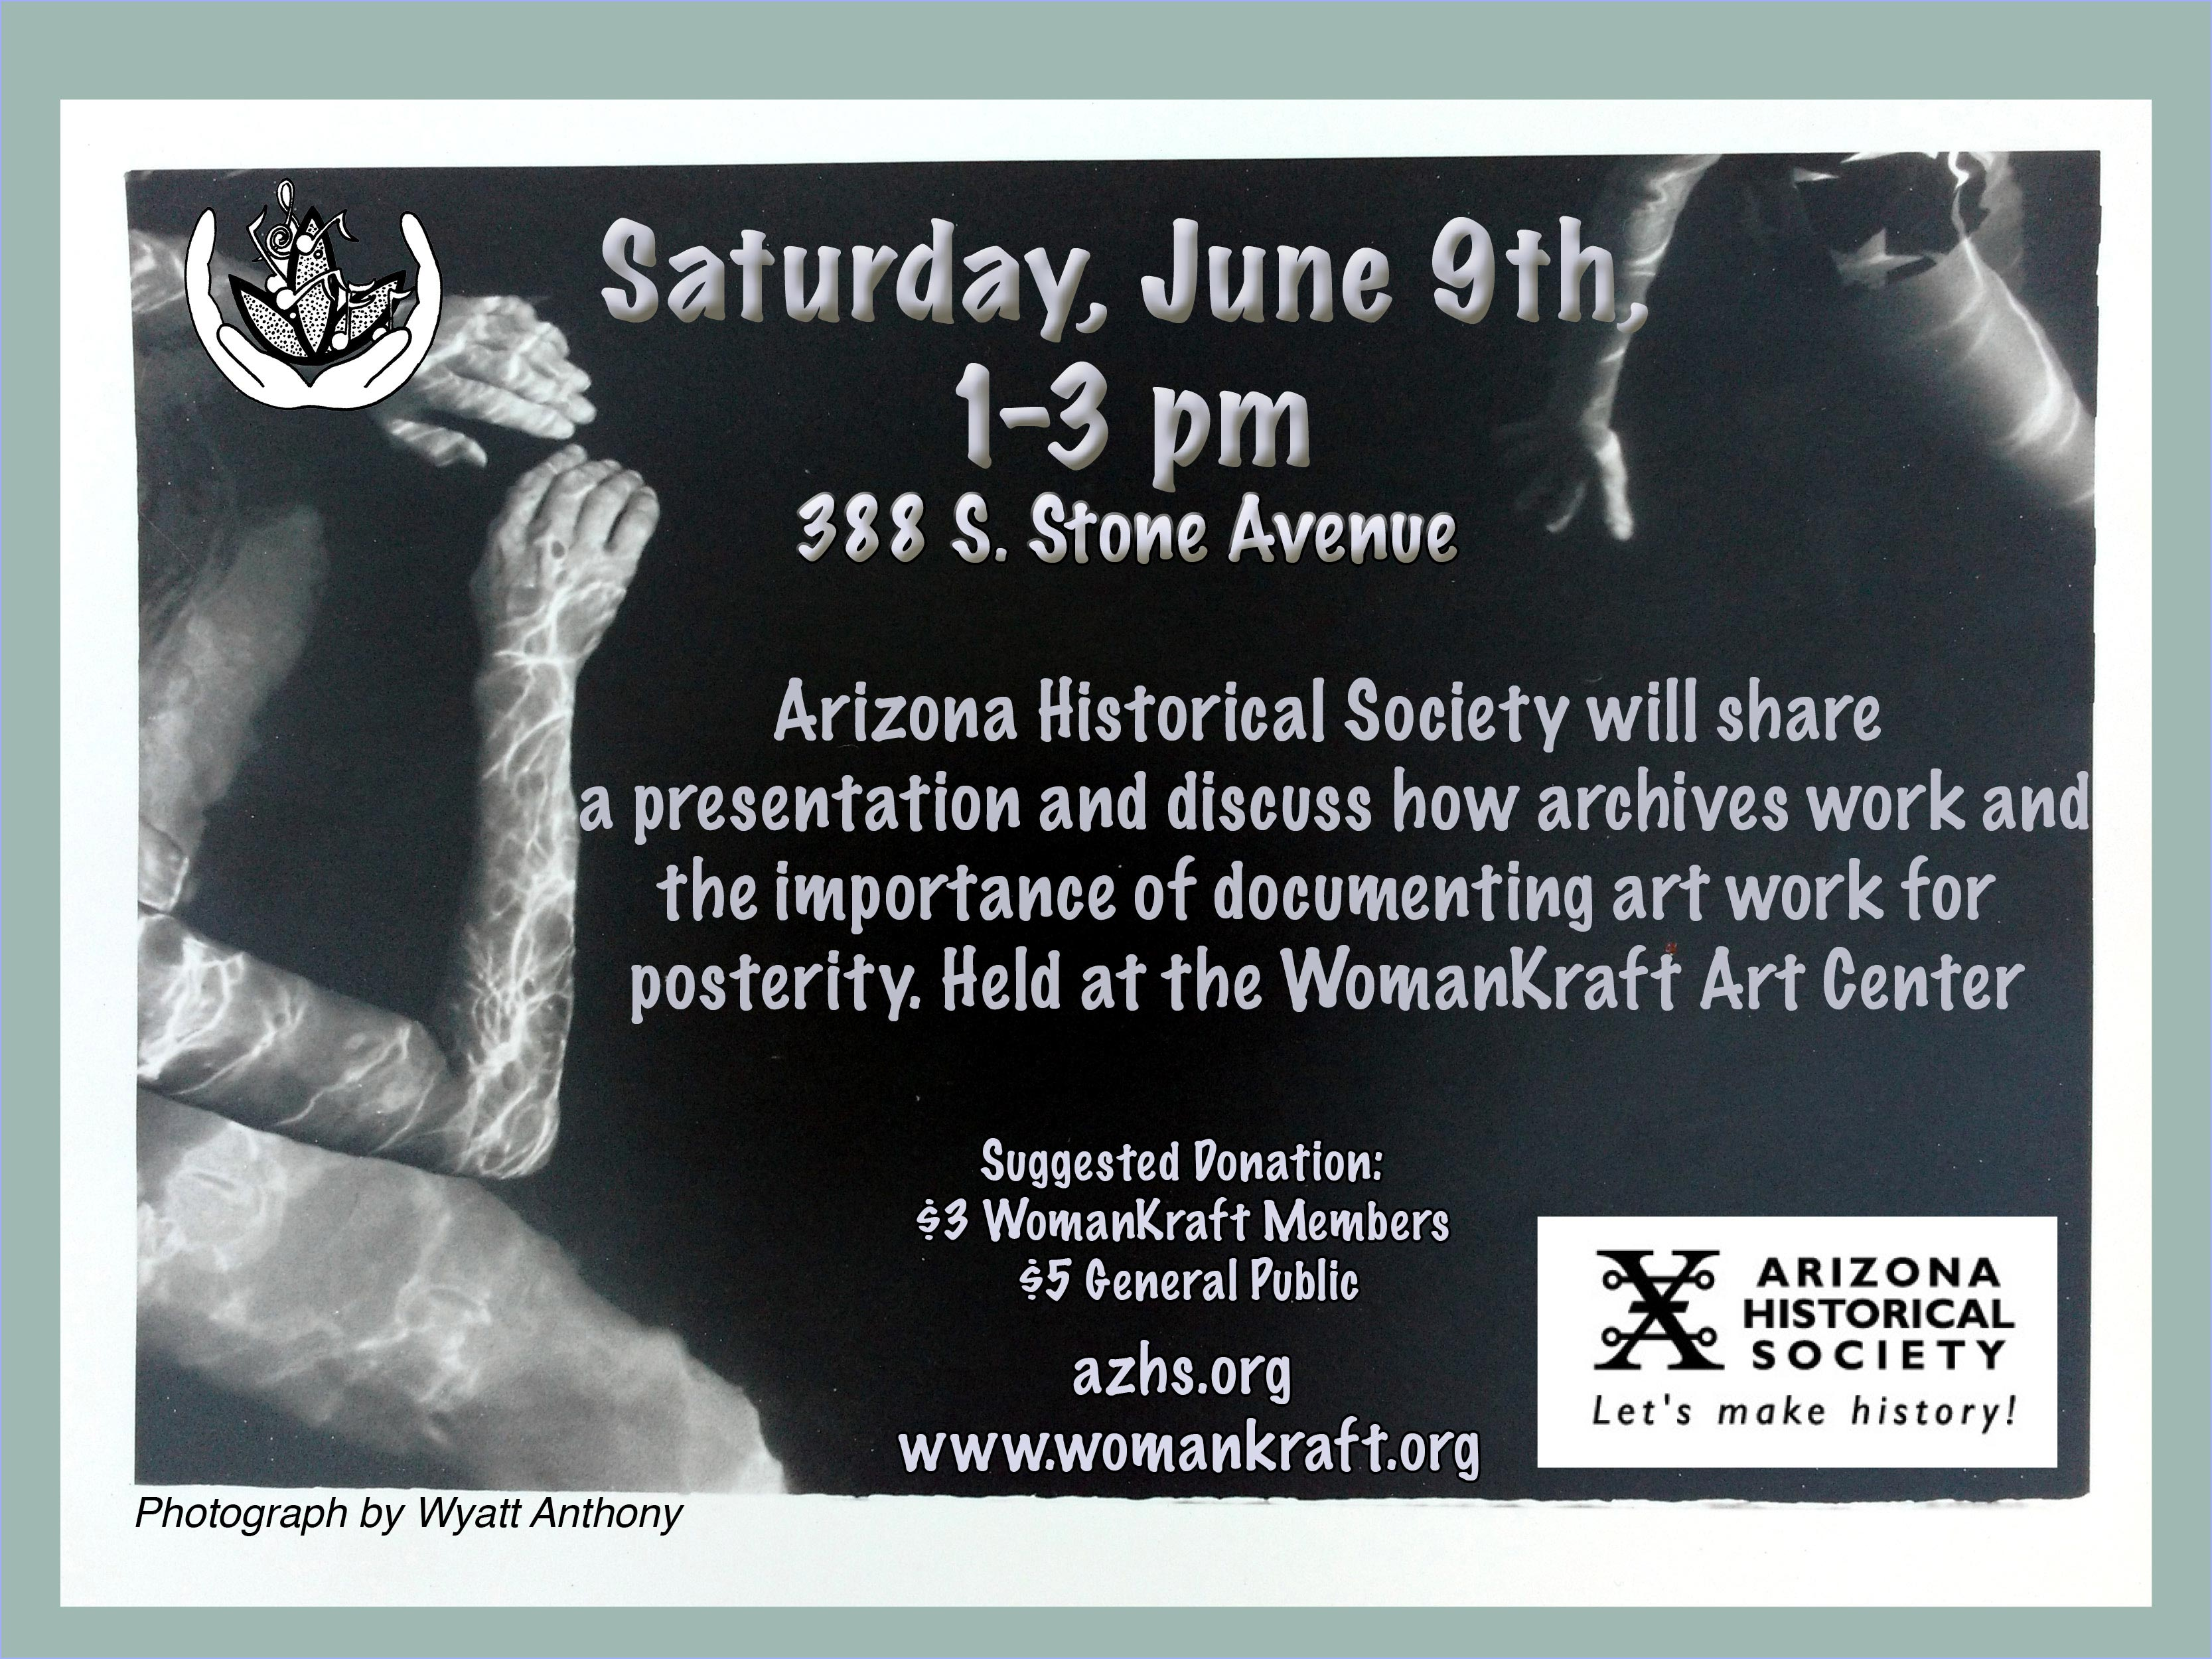 WomanKraft Art Center – Art and Education since 1974 in the Tucson